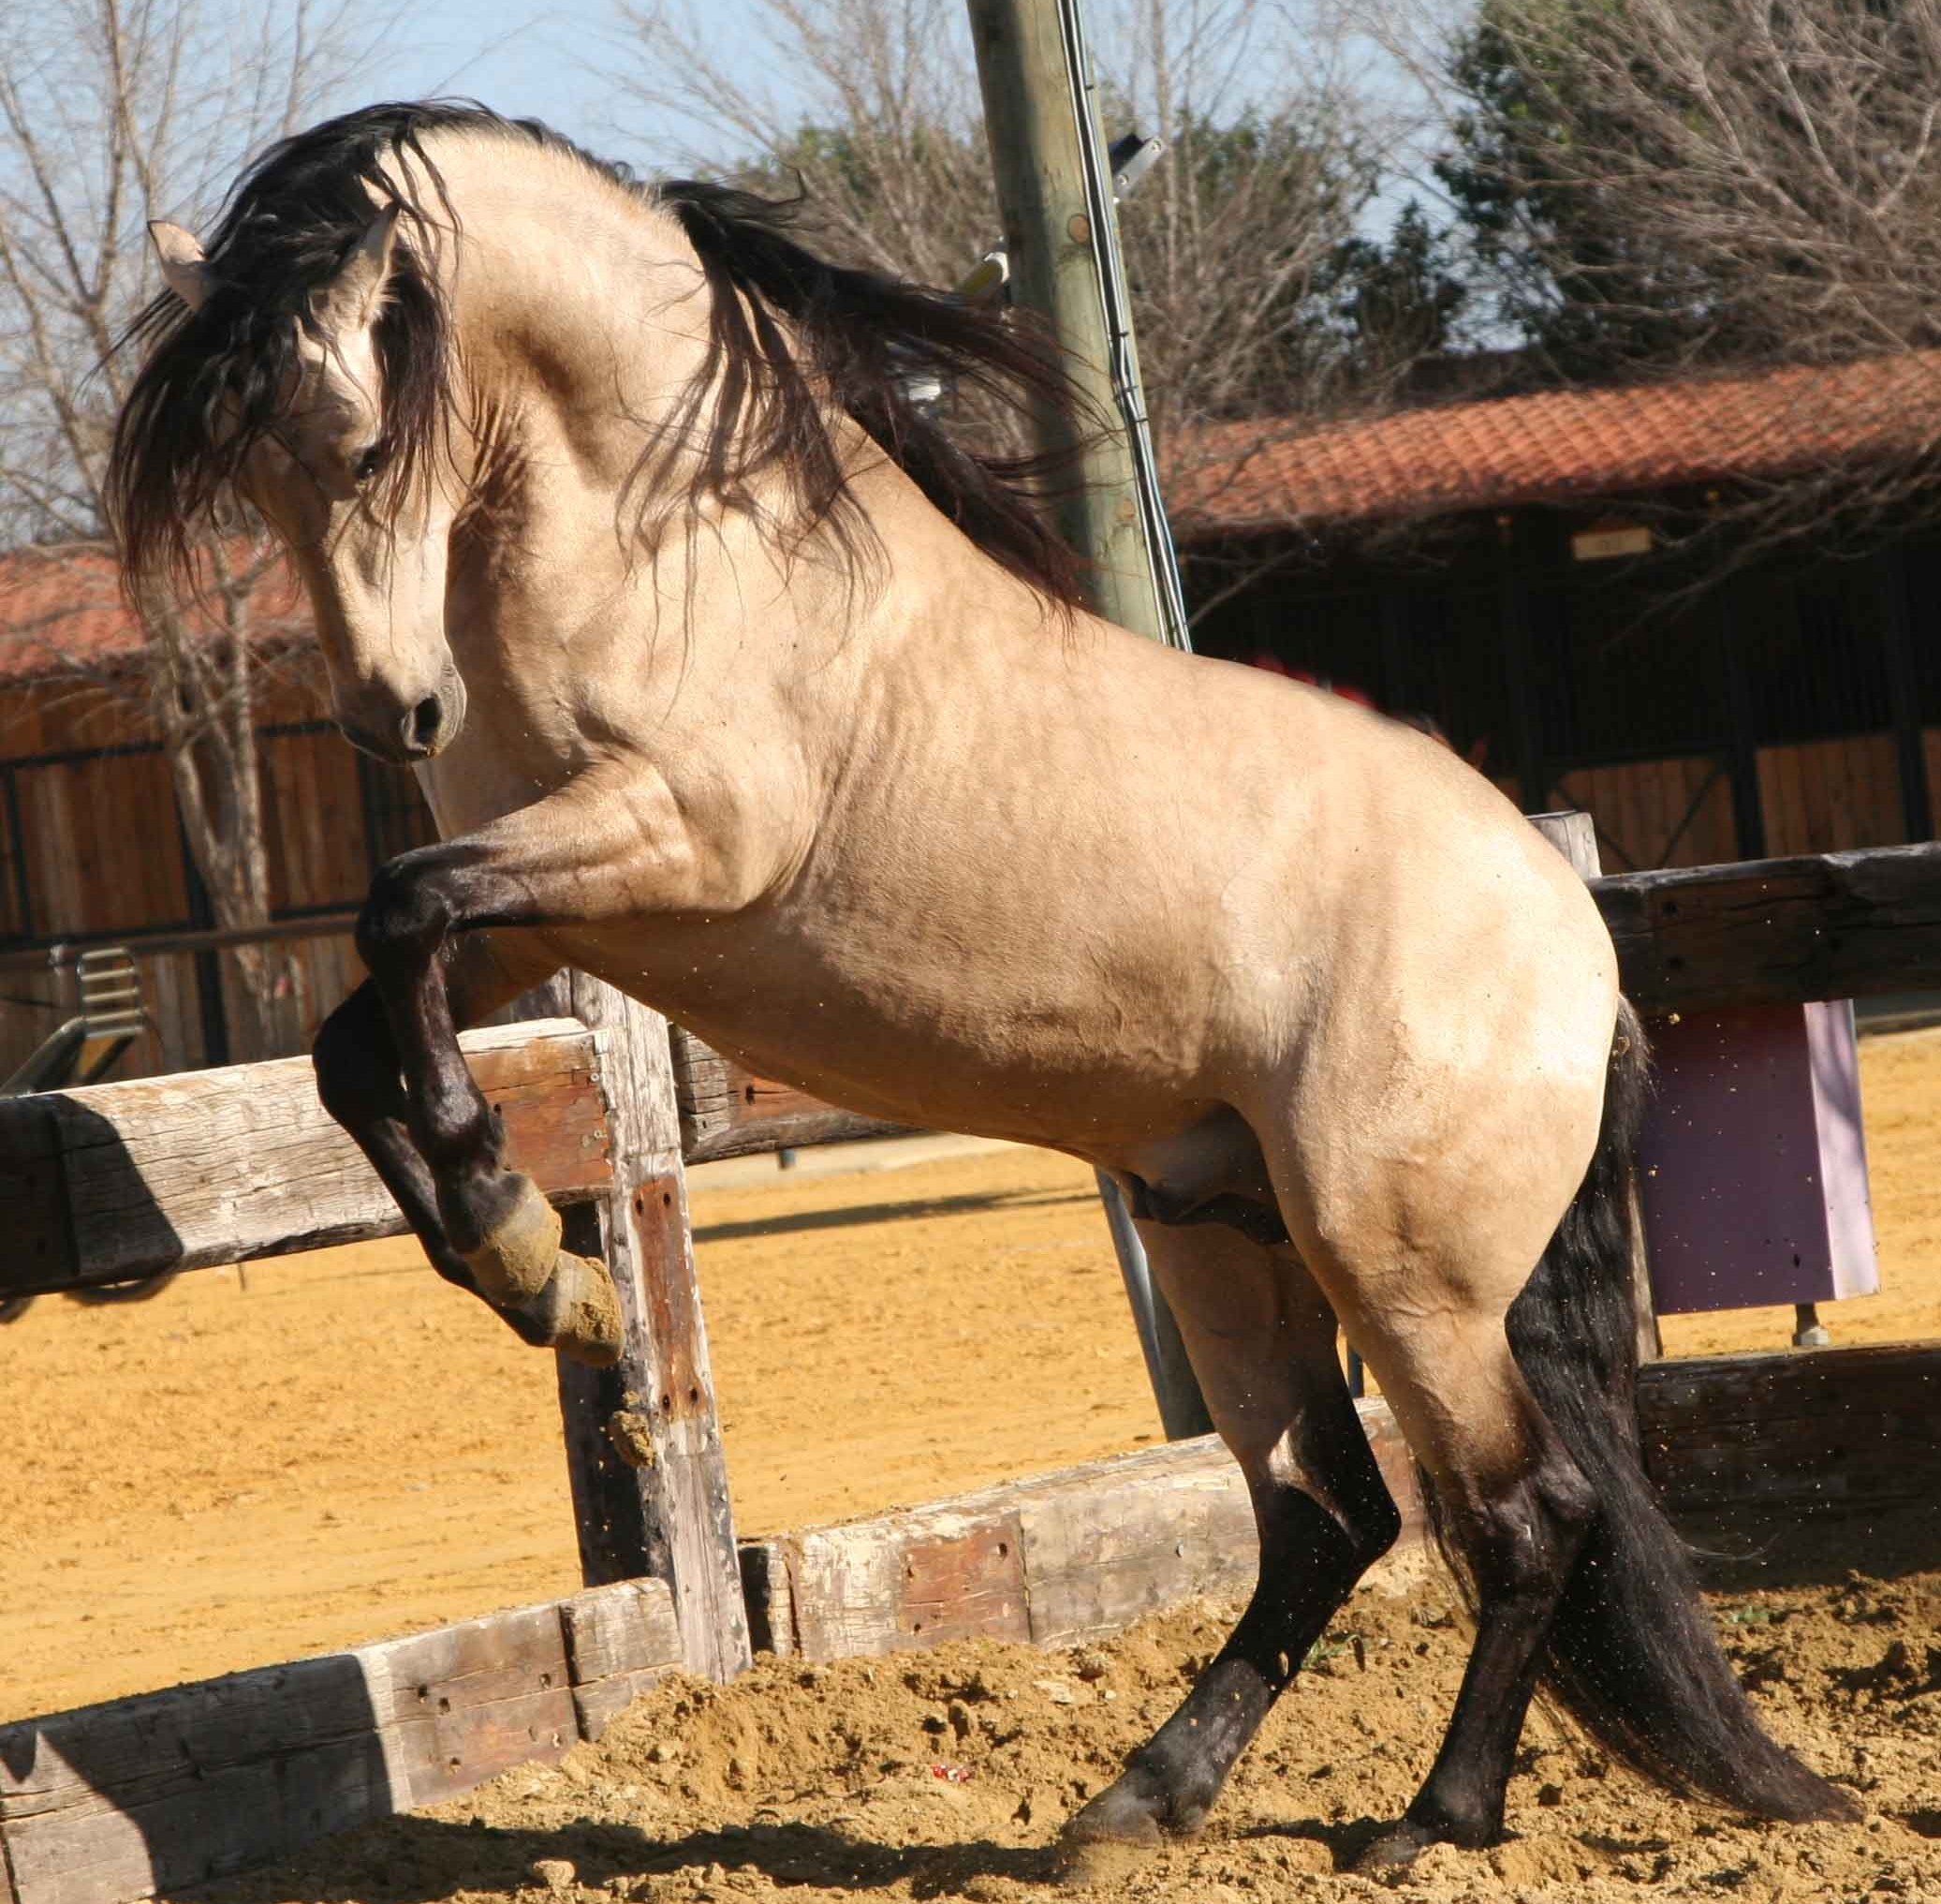 lusitanian_showing_off_iberian_horse_hd-wallpaper-251573.jpg